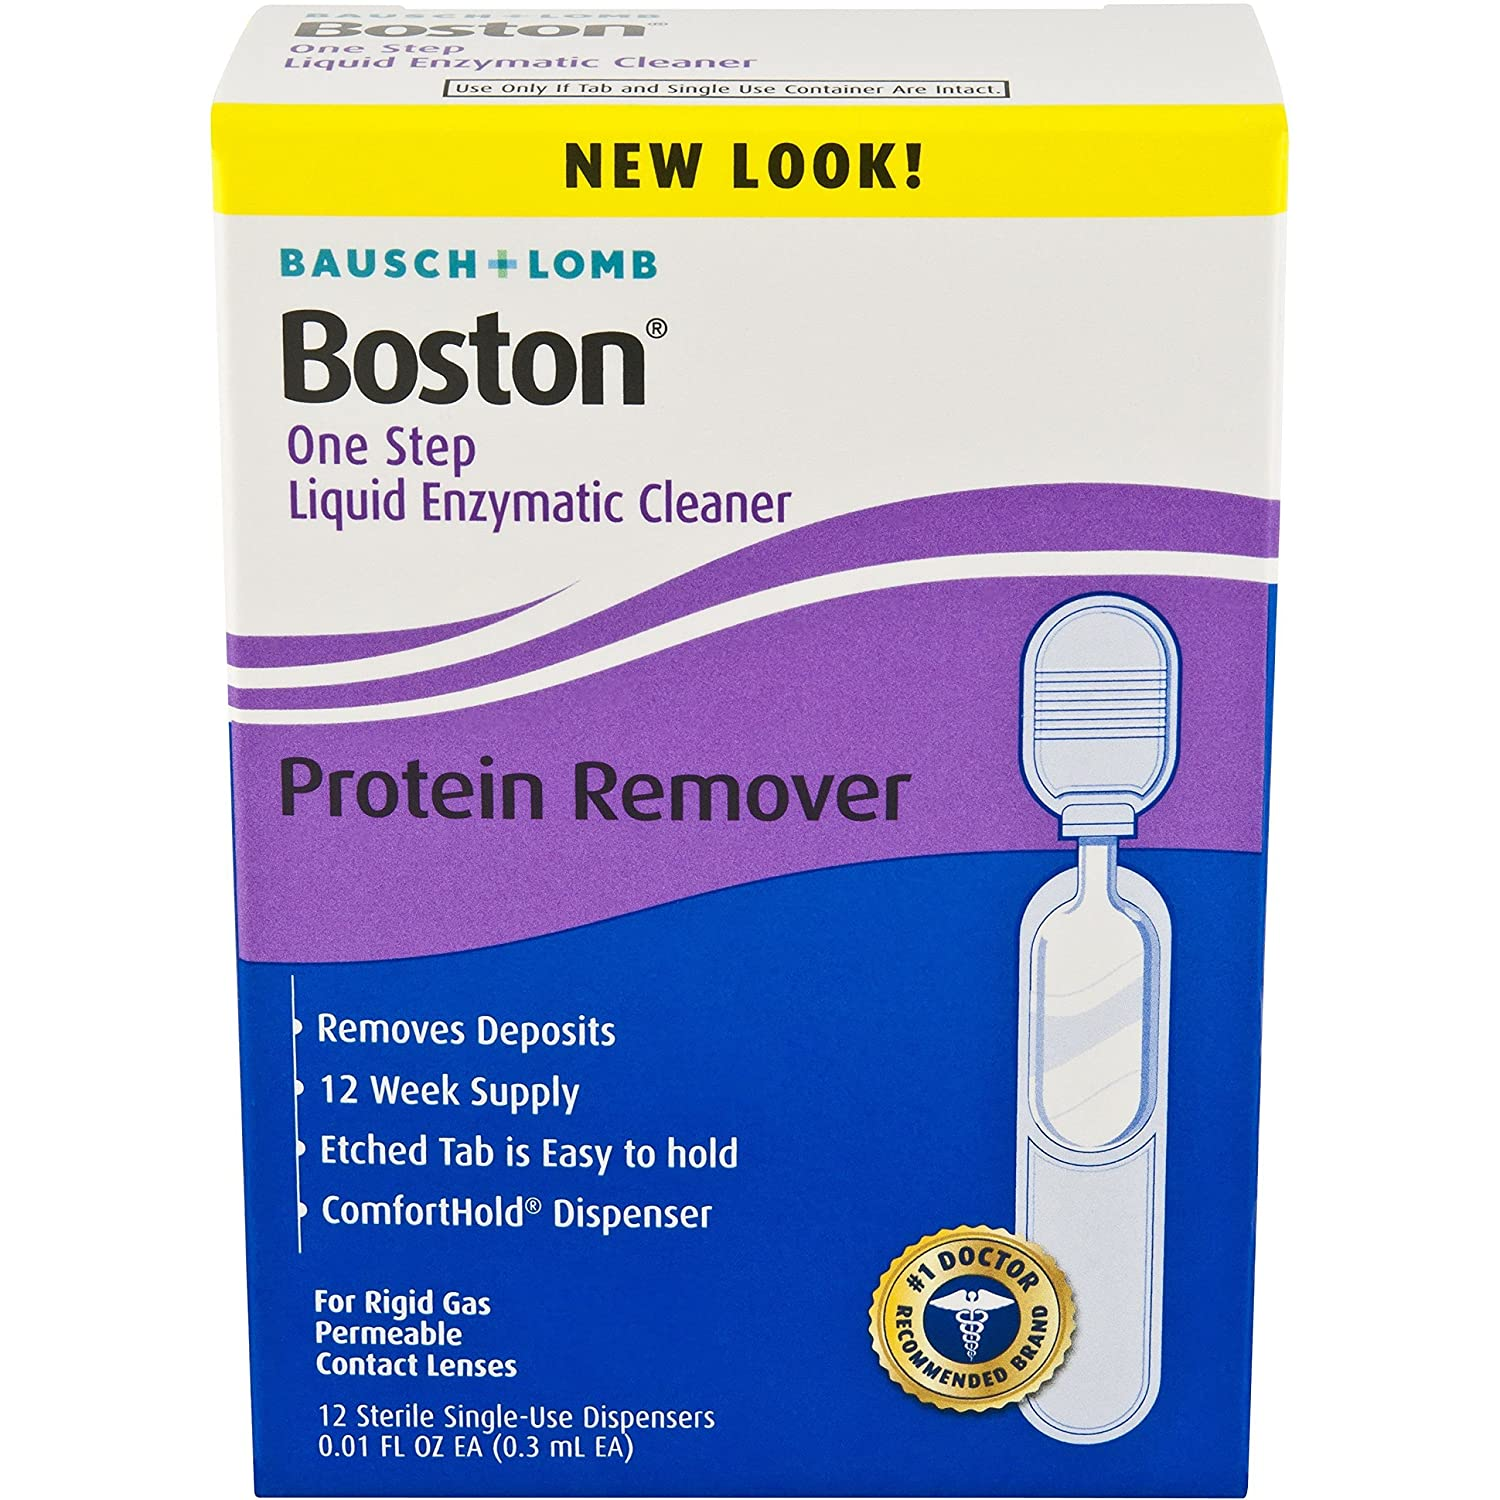 Bausch & Lomb Boston One Step Liquid Enzymatic Cleaner, Protein Remover 3.60 mL 047144056029